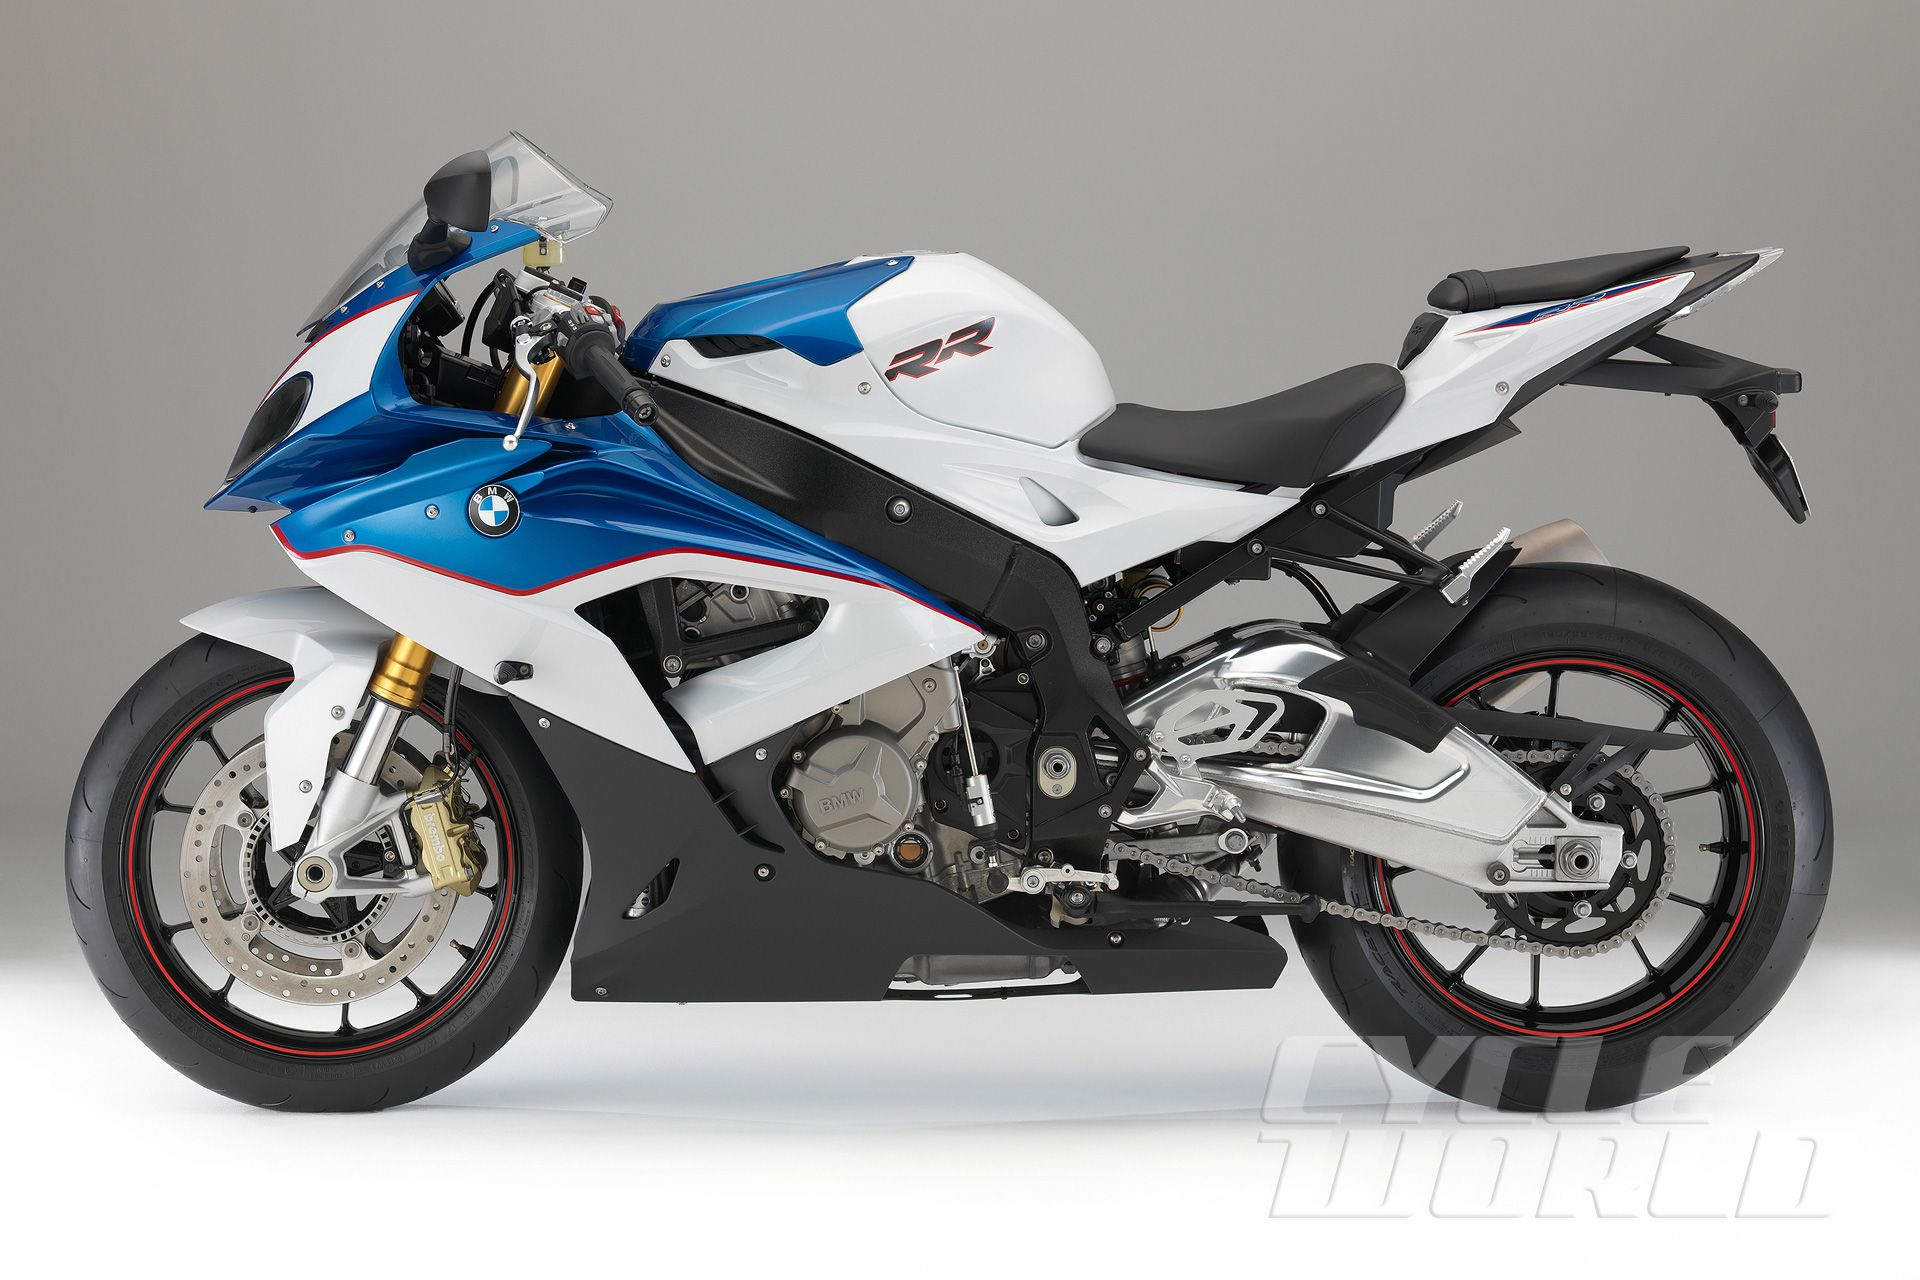 2015 Bmw S1000rr First Ride Bmw S1000rr Bmw Motorcycle